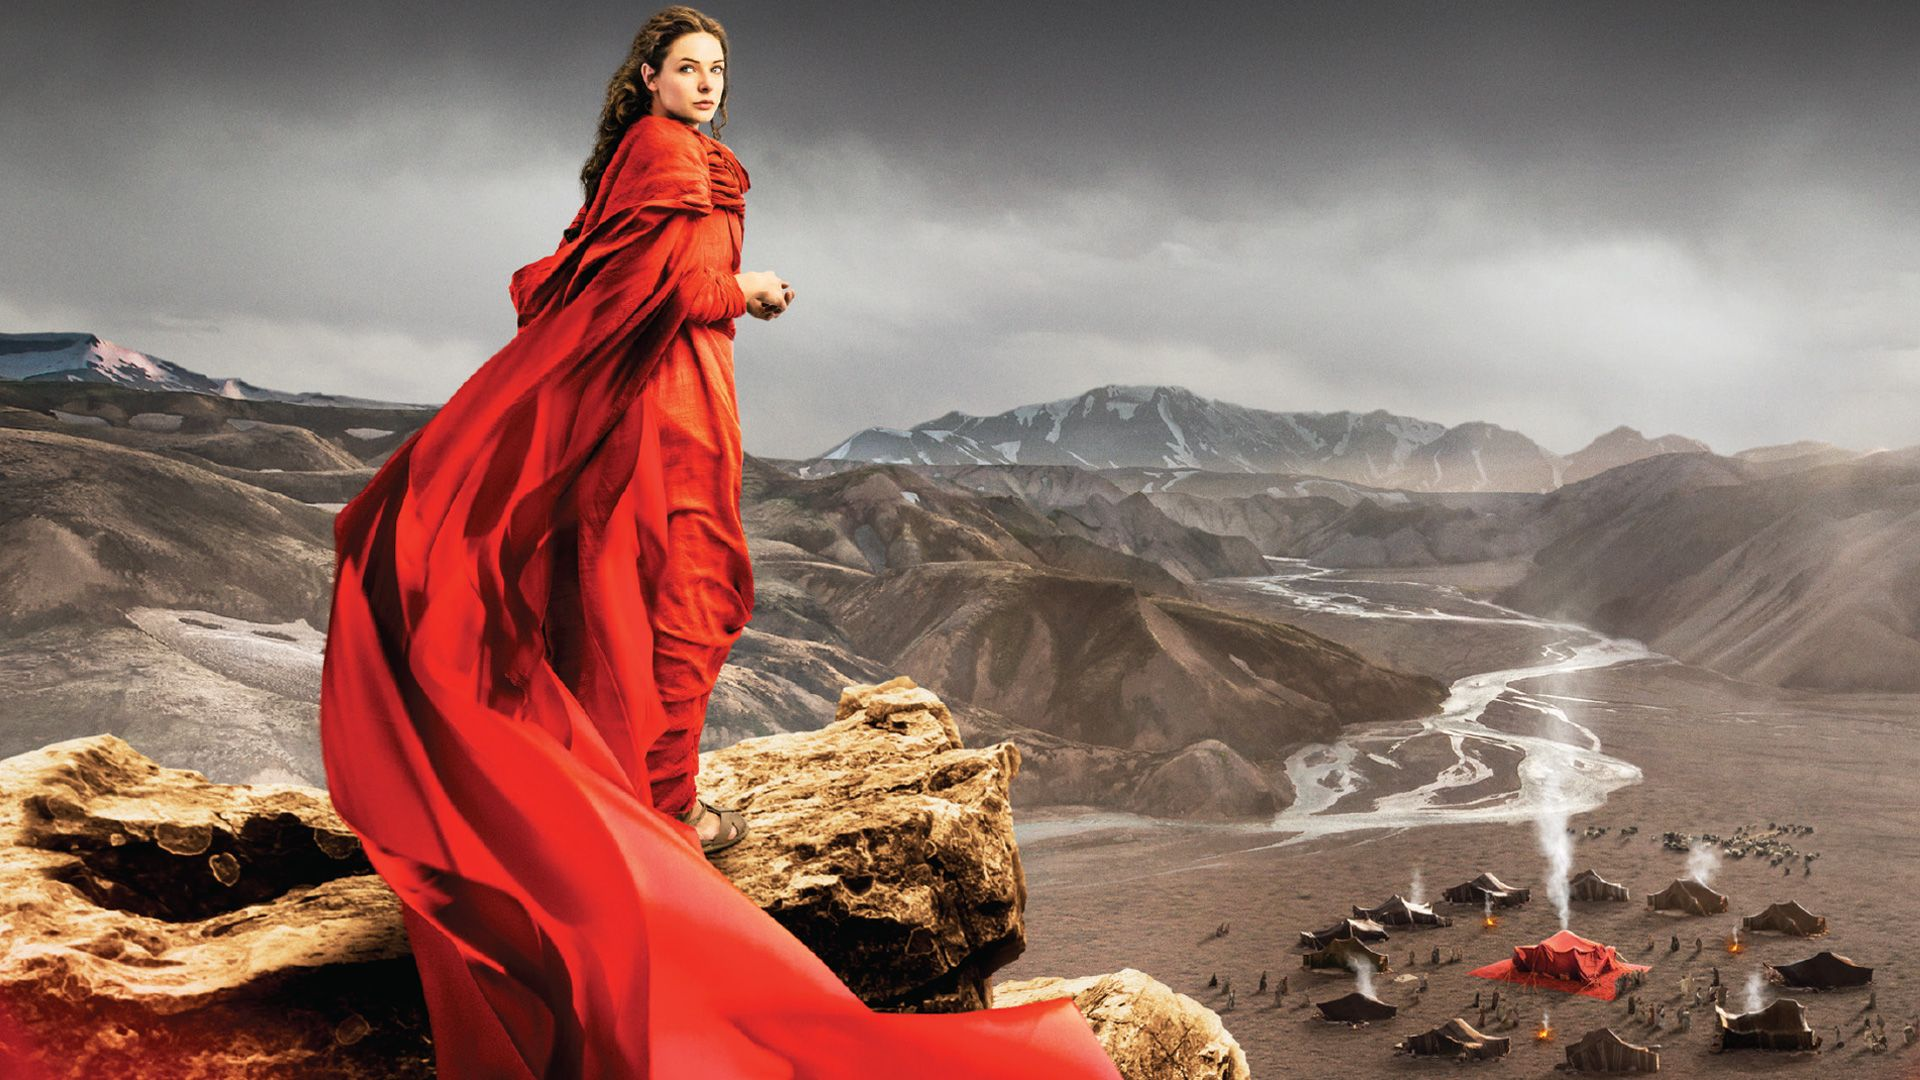 "Lifetime's miniseries ""The Red Tent,"" based on the best-selling novel by Anita Diamant, premieres December 7 and December 8 at 9/8c. ""The Red Tent"" is a sweeping tale that takes place during the times of the Old Testament, told through the eyes of Dinah, the daughter of Leah and Jacob. Airing over two nights, the all-star cast includes Academy Award, Golden Globe and Emmy nominee Minnie Driver (""Return to Zero,"" ""About a Boy""), Emmy nominee Morena Baccarin (""Homeland""), Golden Globe nominee…"